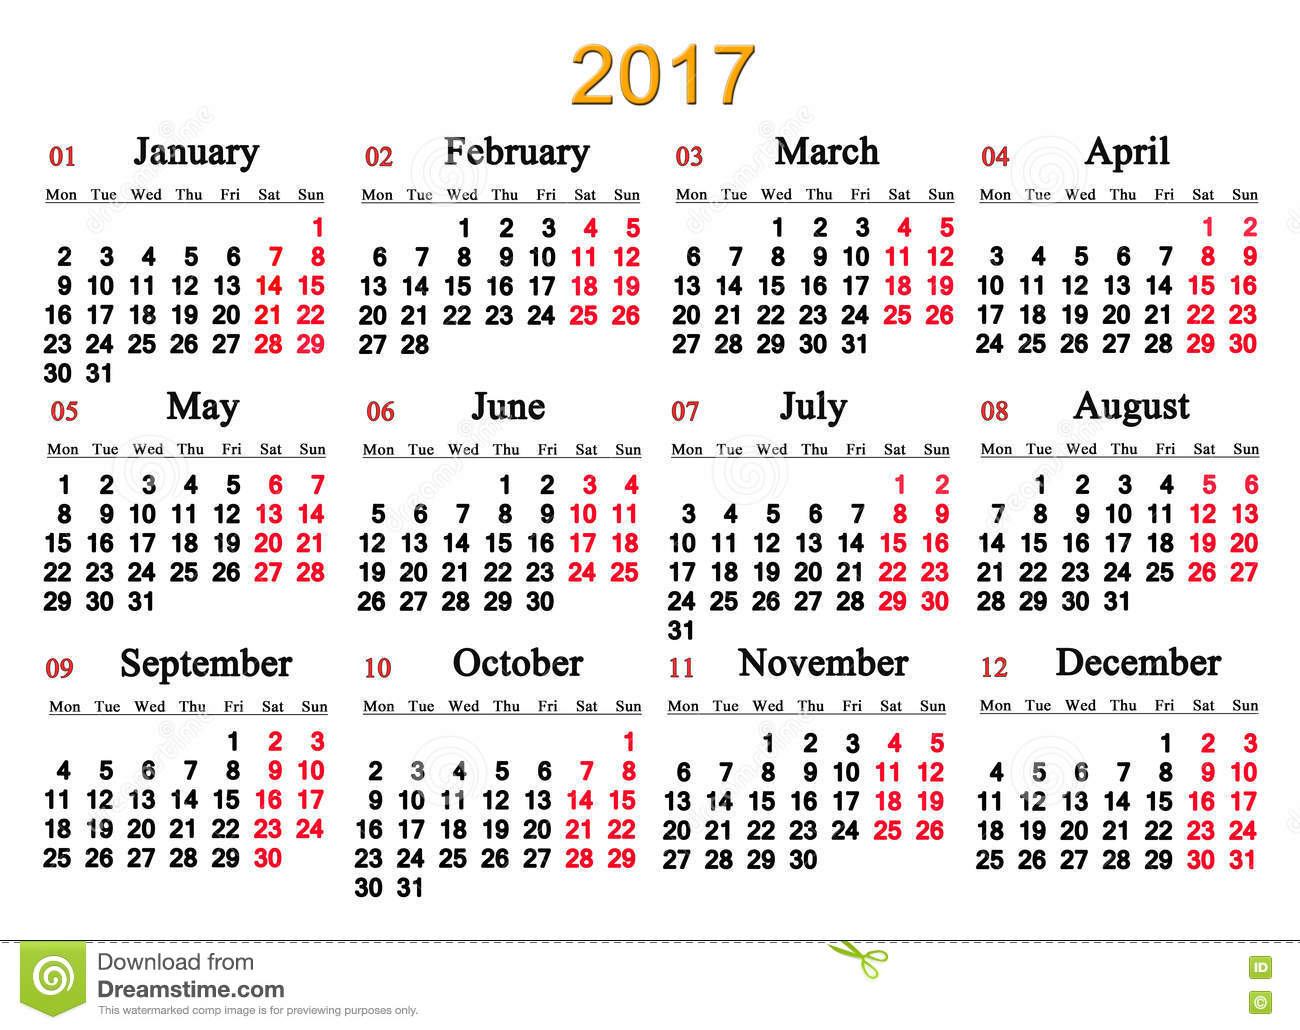 Calendar For 2017 Year Stock Illustration - Image: 78698286